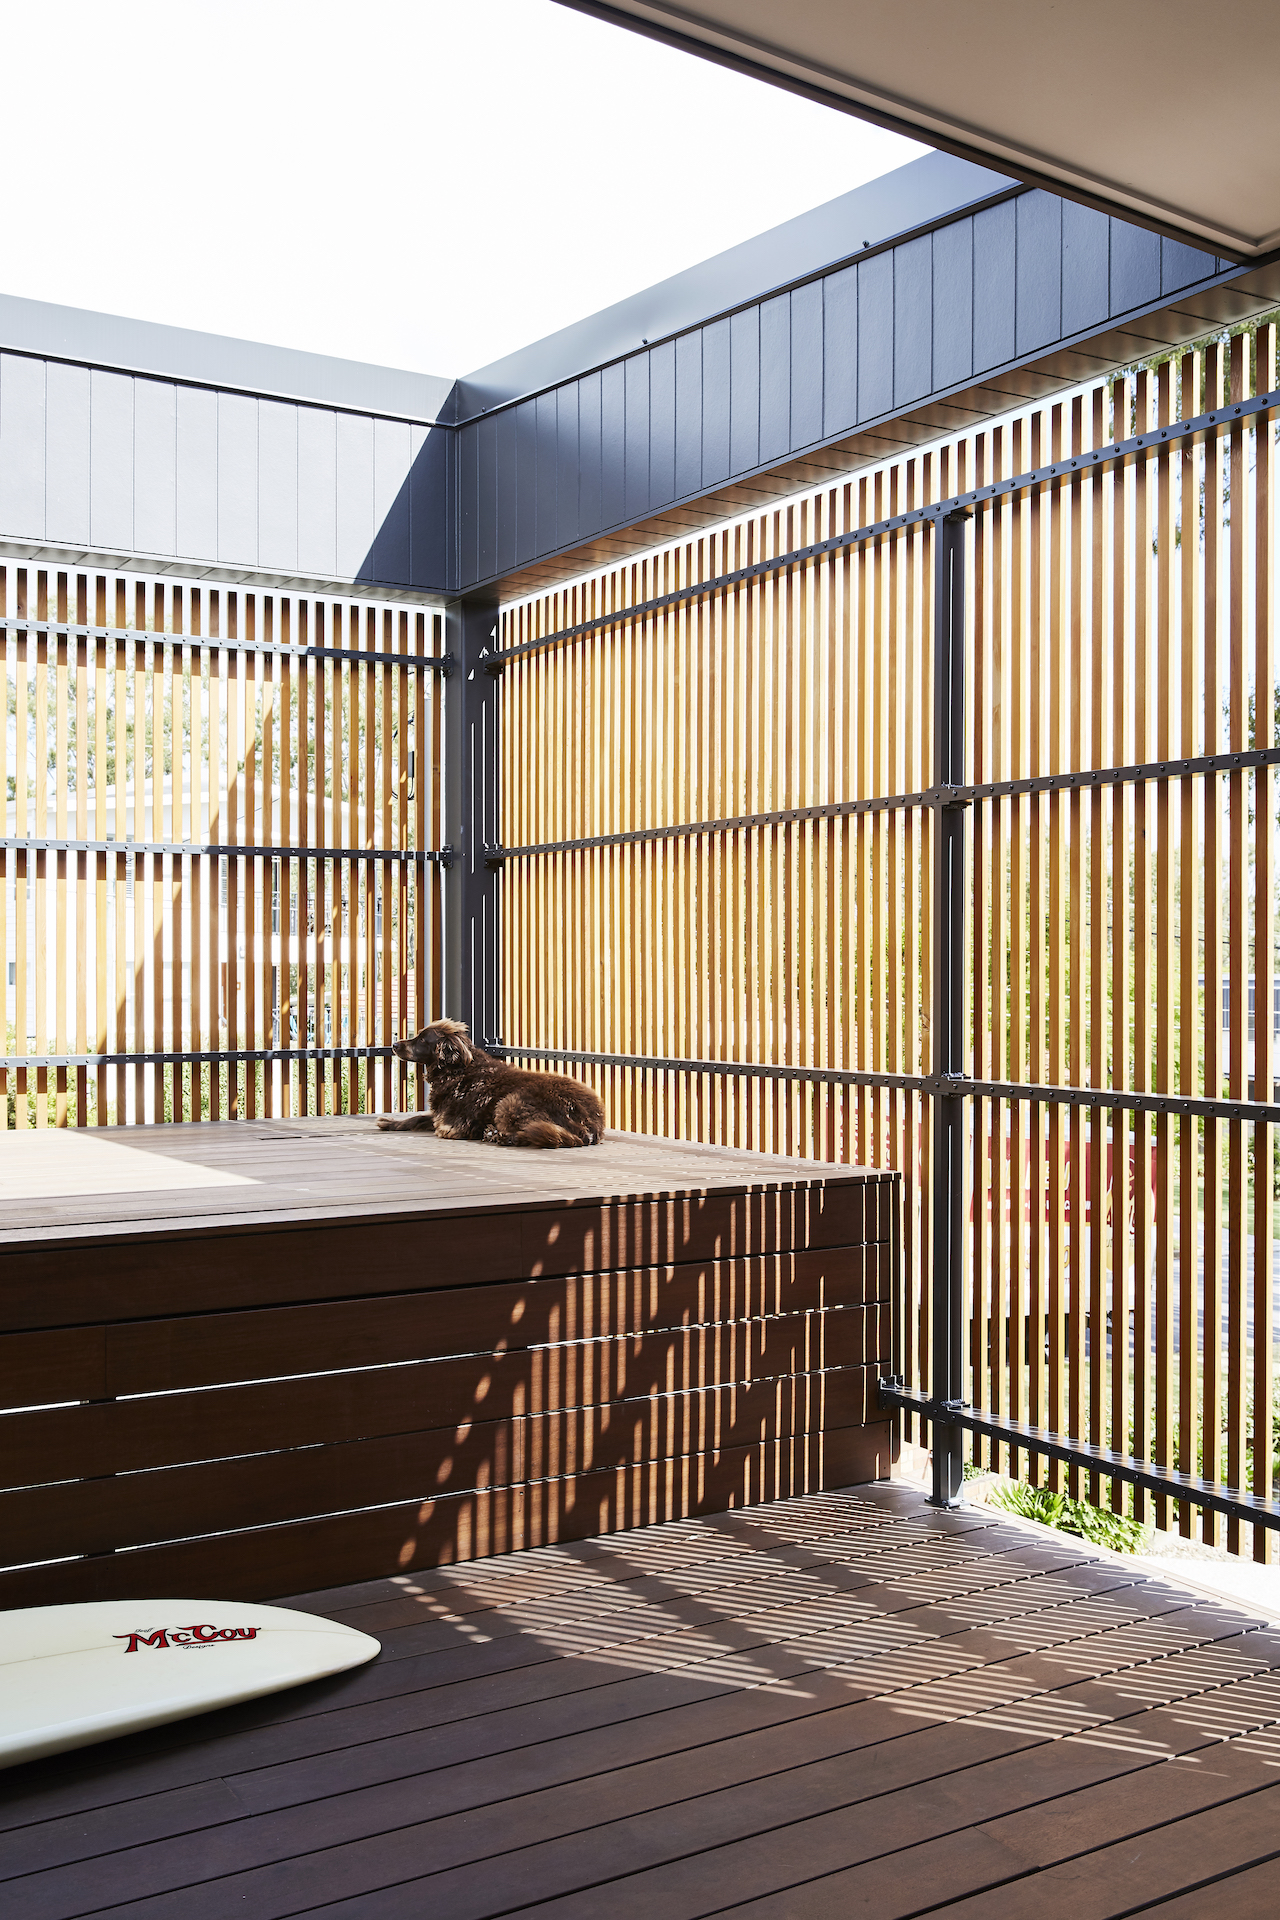 One can relax on the home's outdoor terrace separated by wooden screens for added privacy.